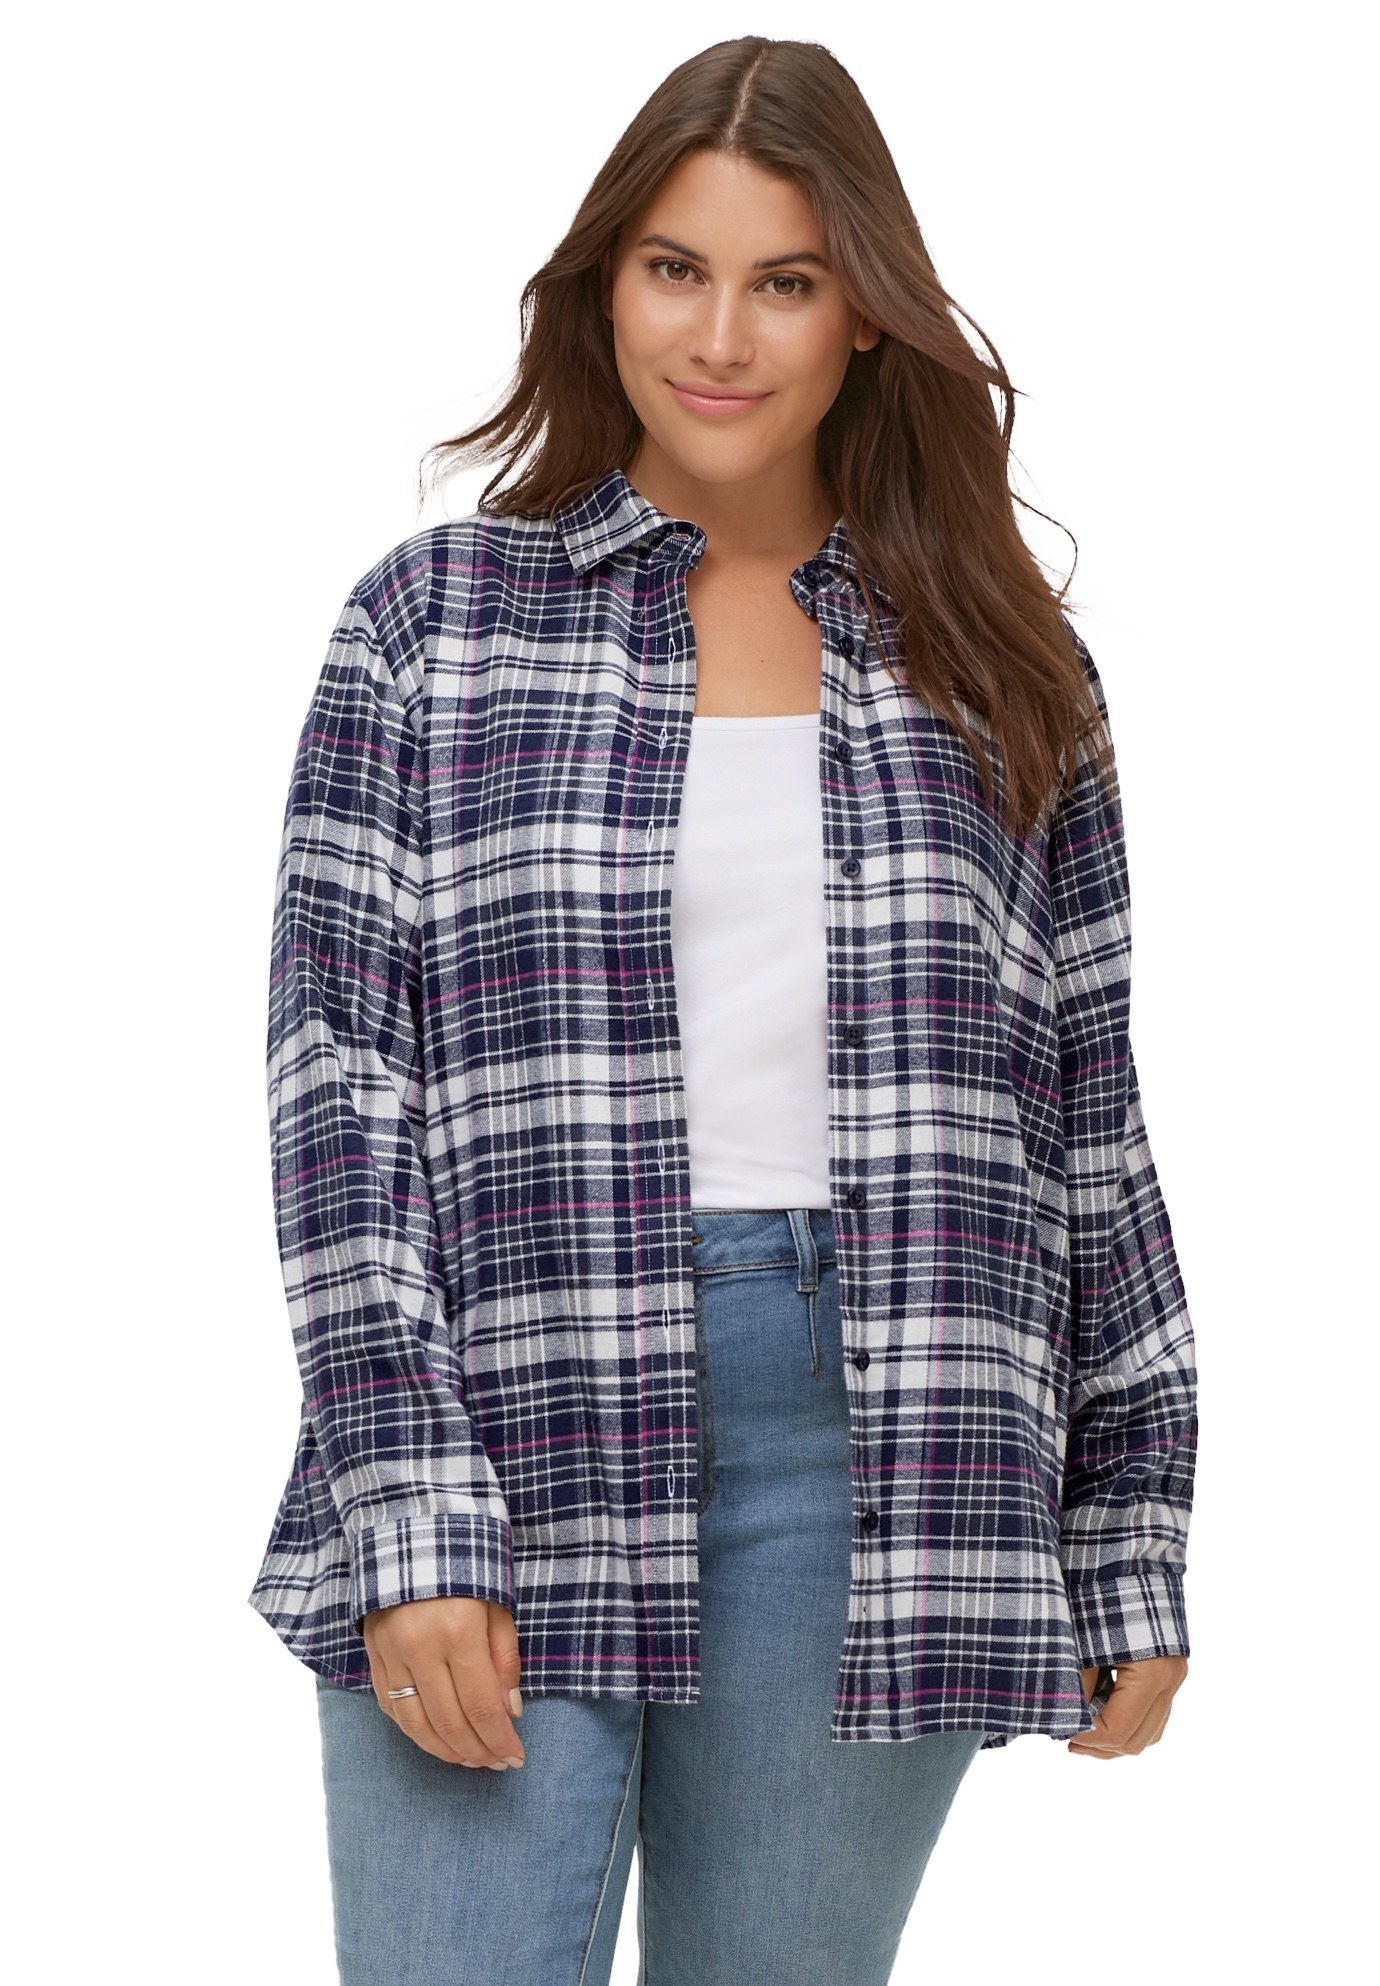 Model wearing an unbuttoned long sleeve navy and purple plaid shirt